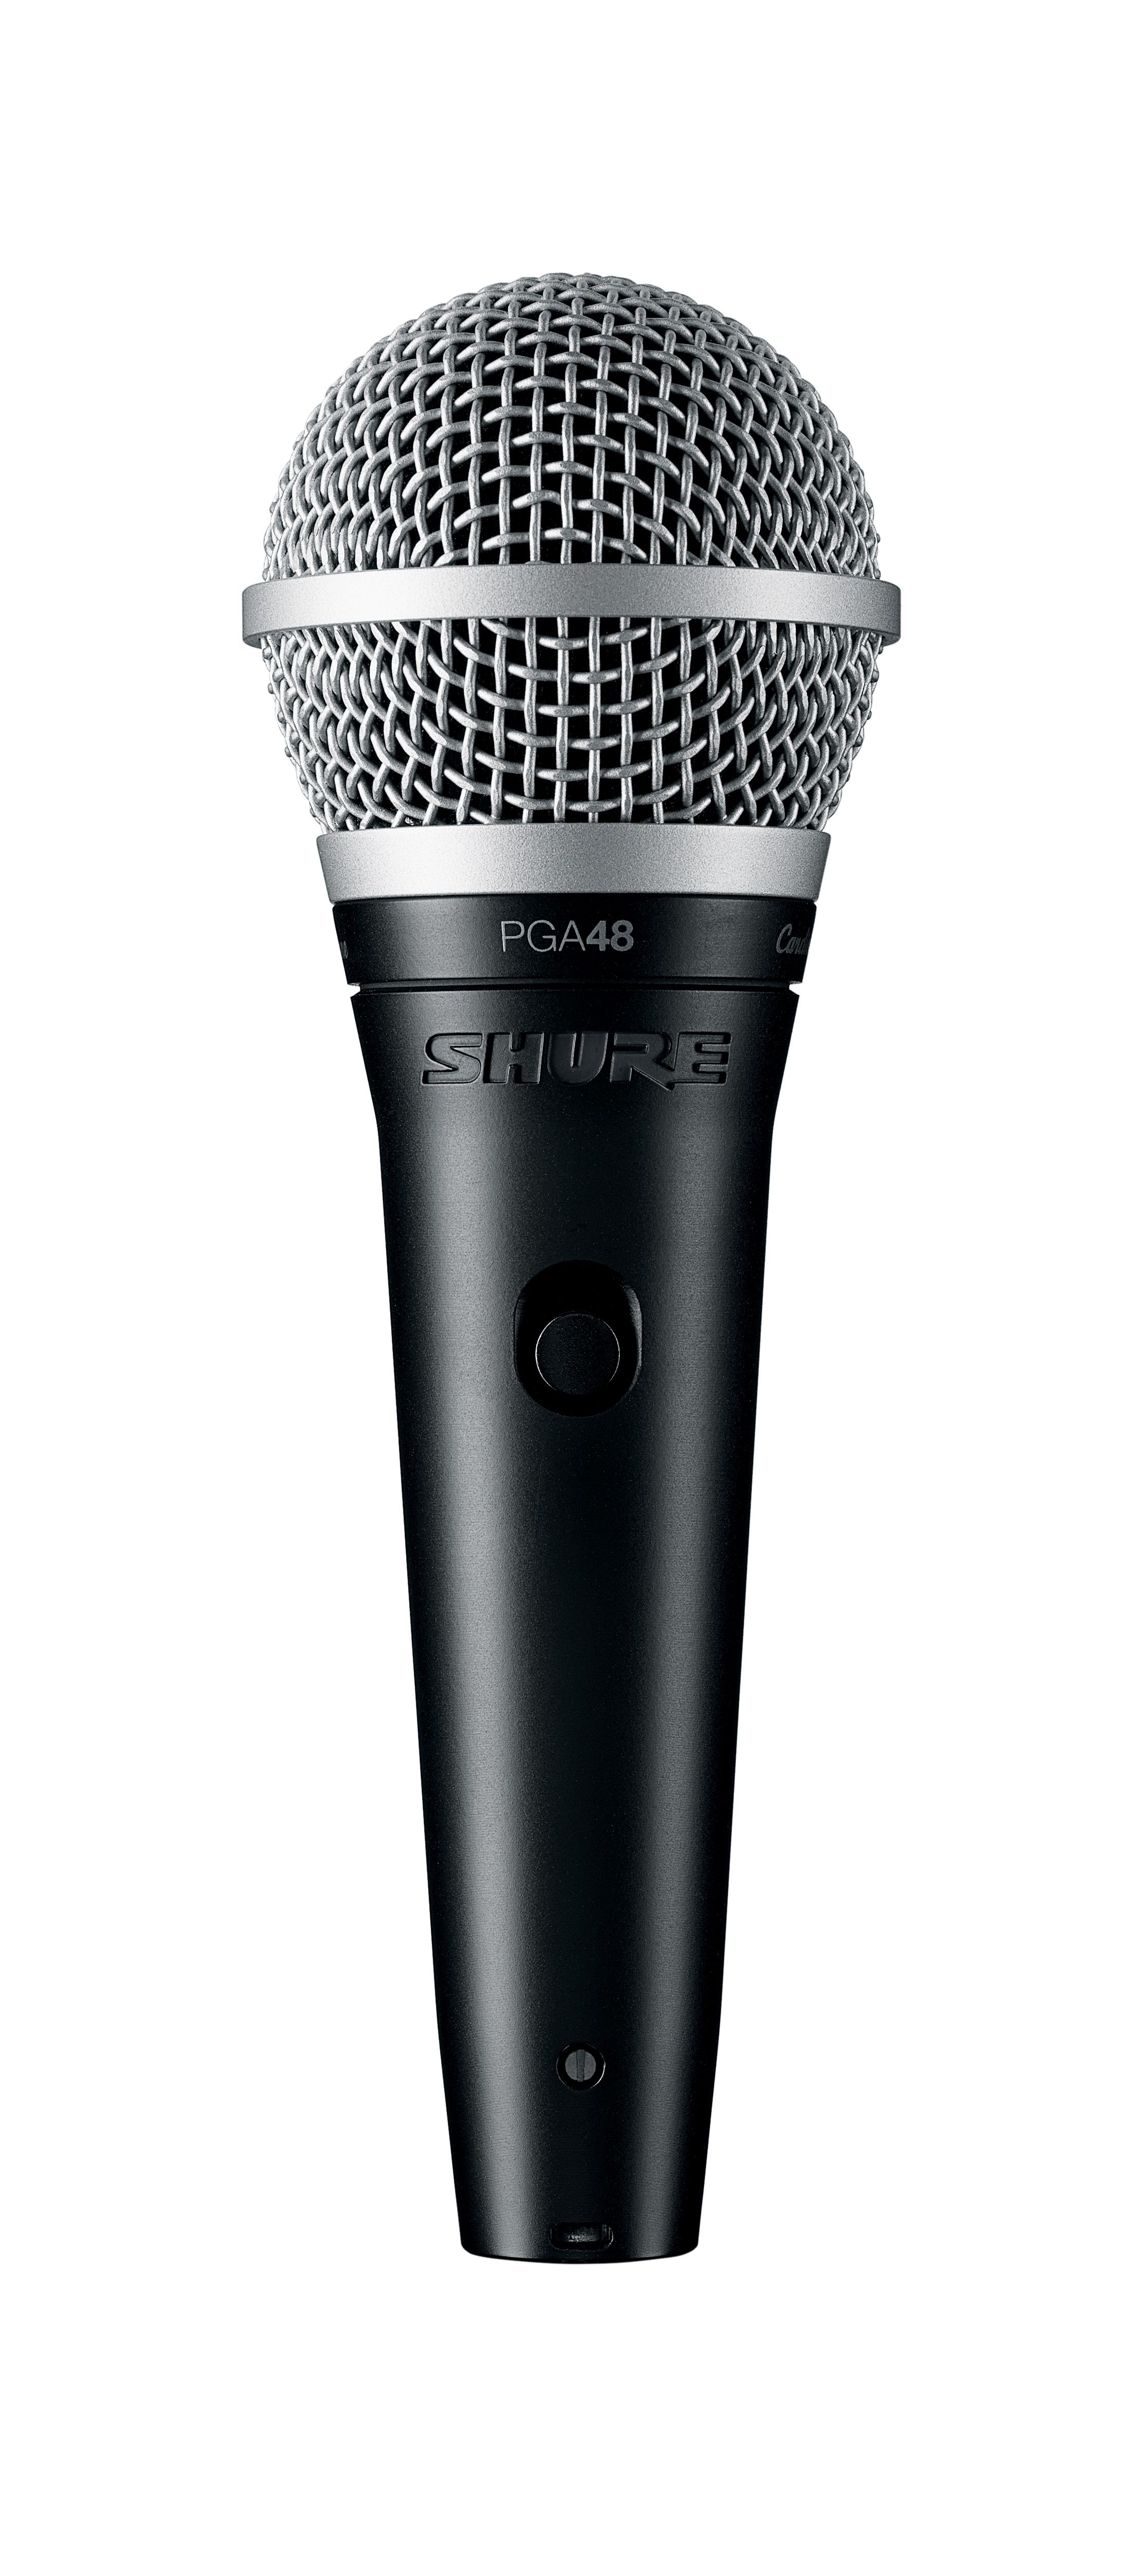 Shure PGA48 Cardioid dynamic vocal microphone With XLR